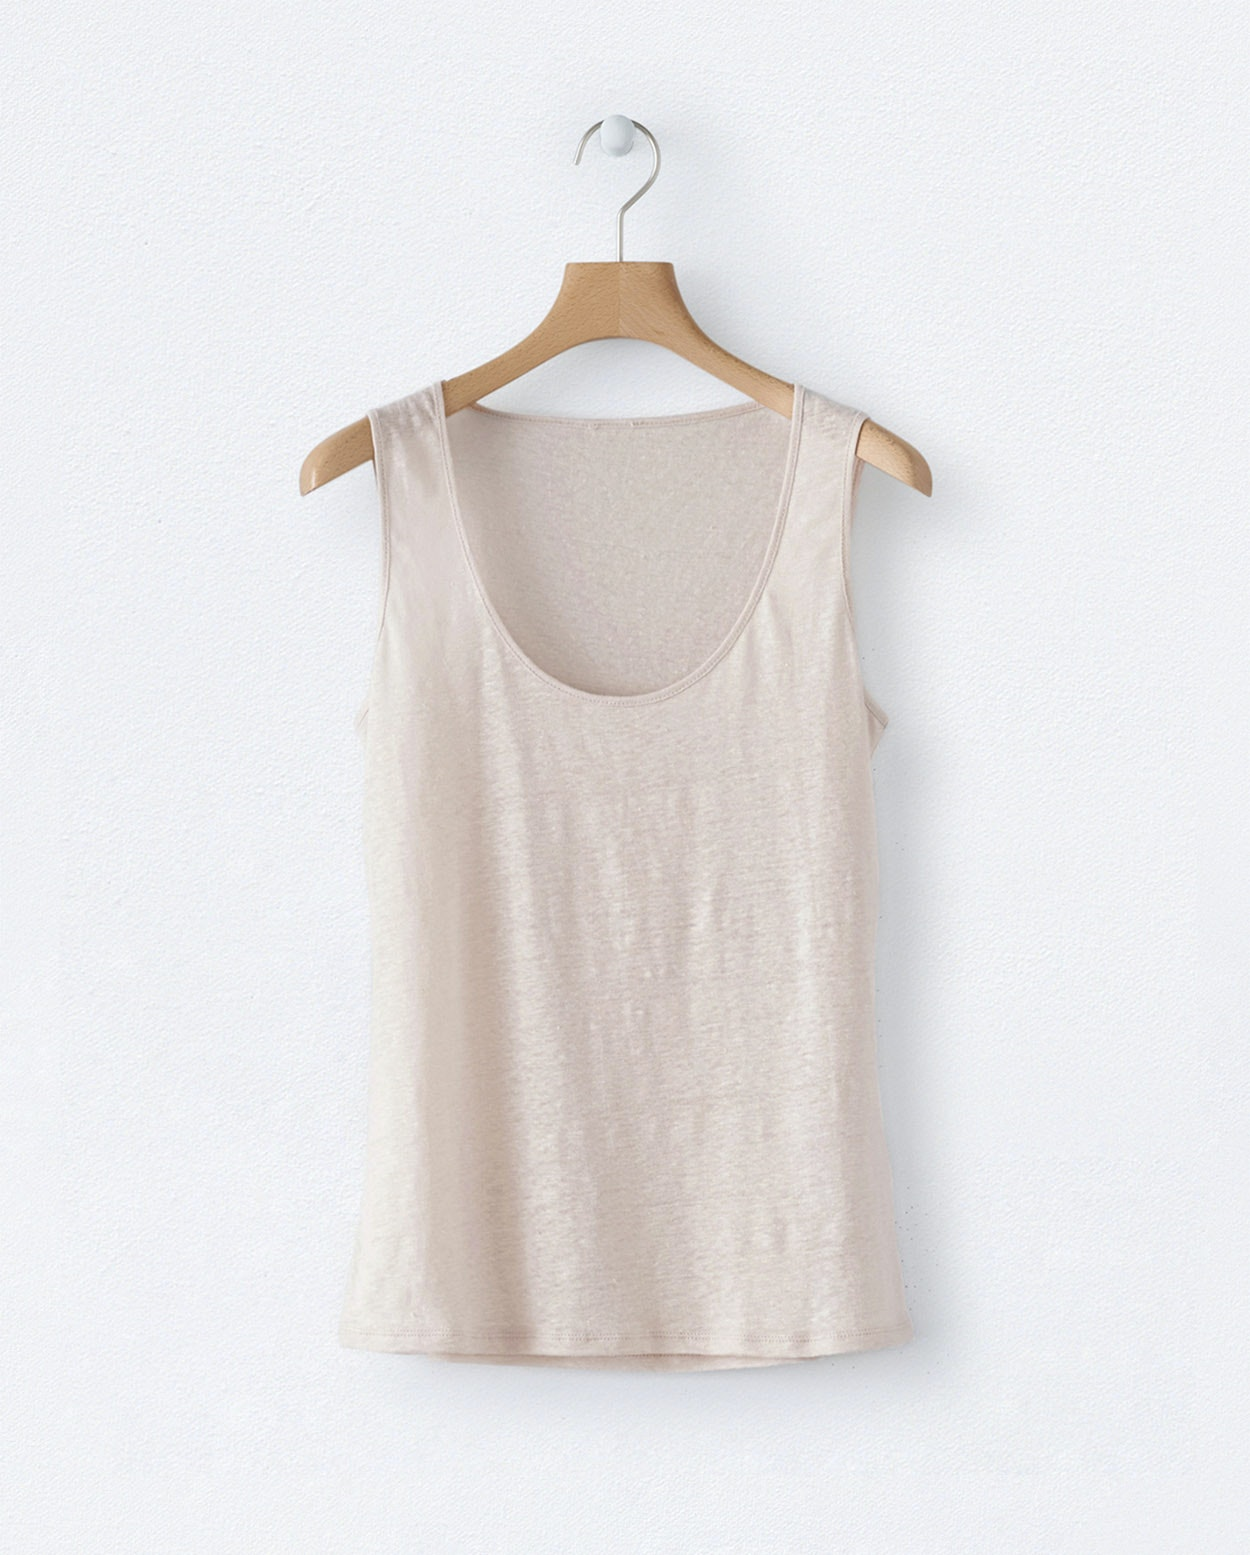 86430add6a0121 ... Product Image of Linen jersey vest ...